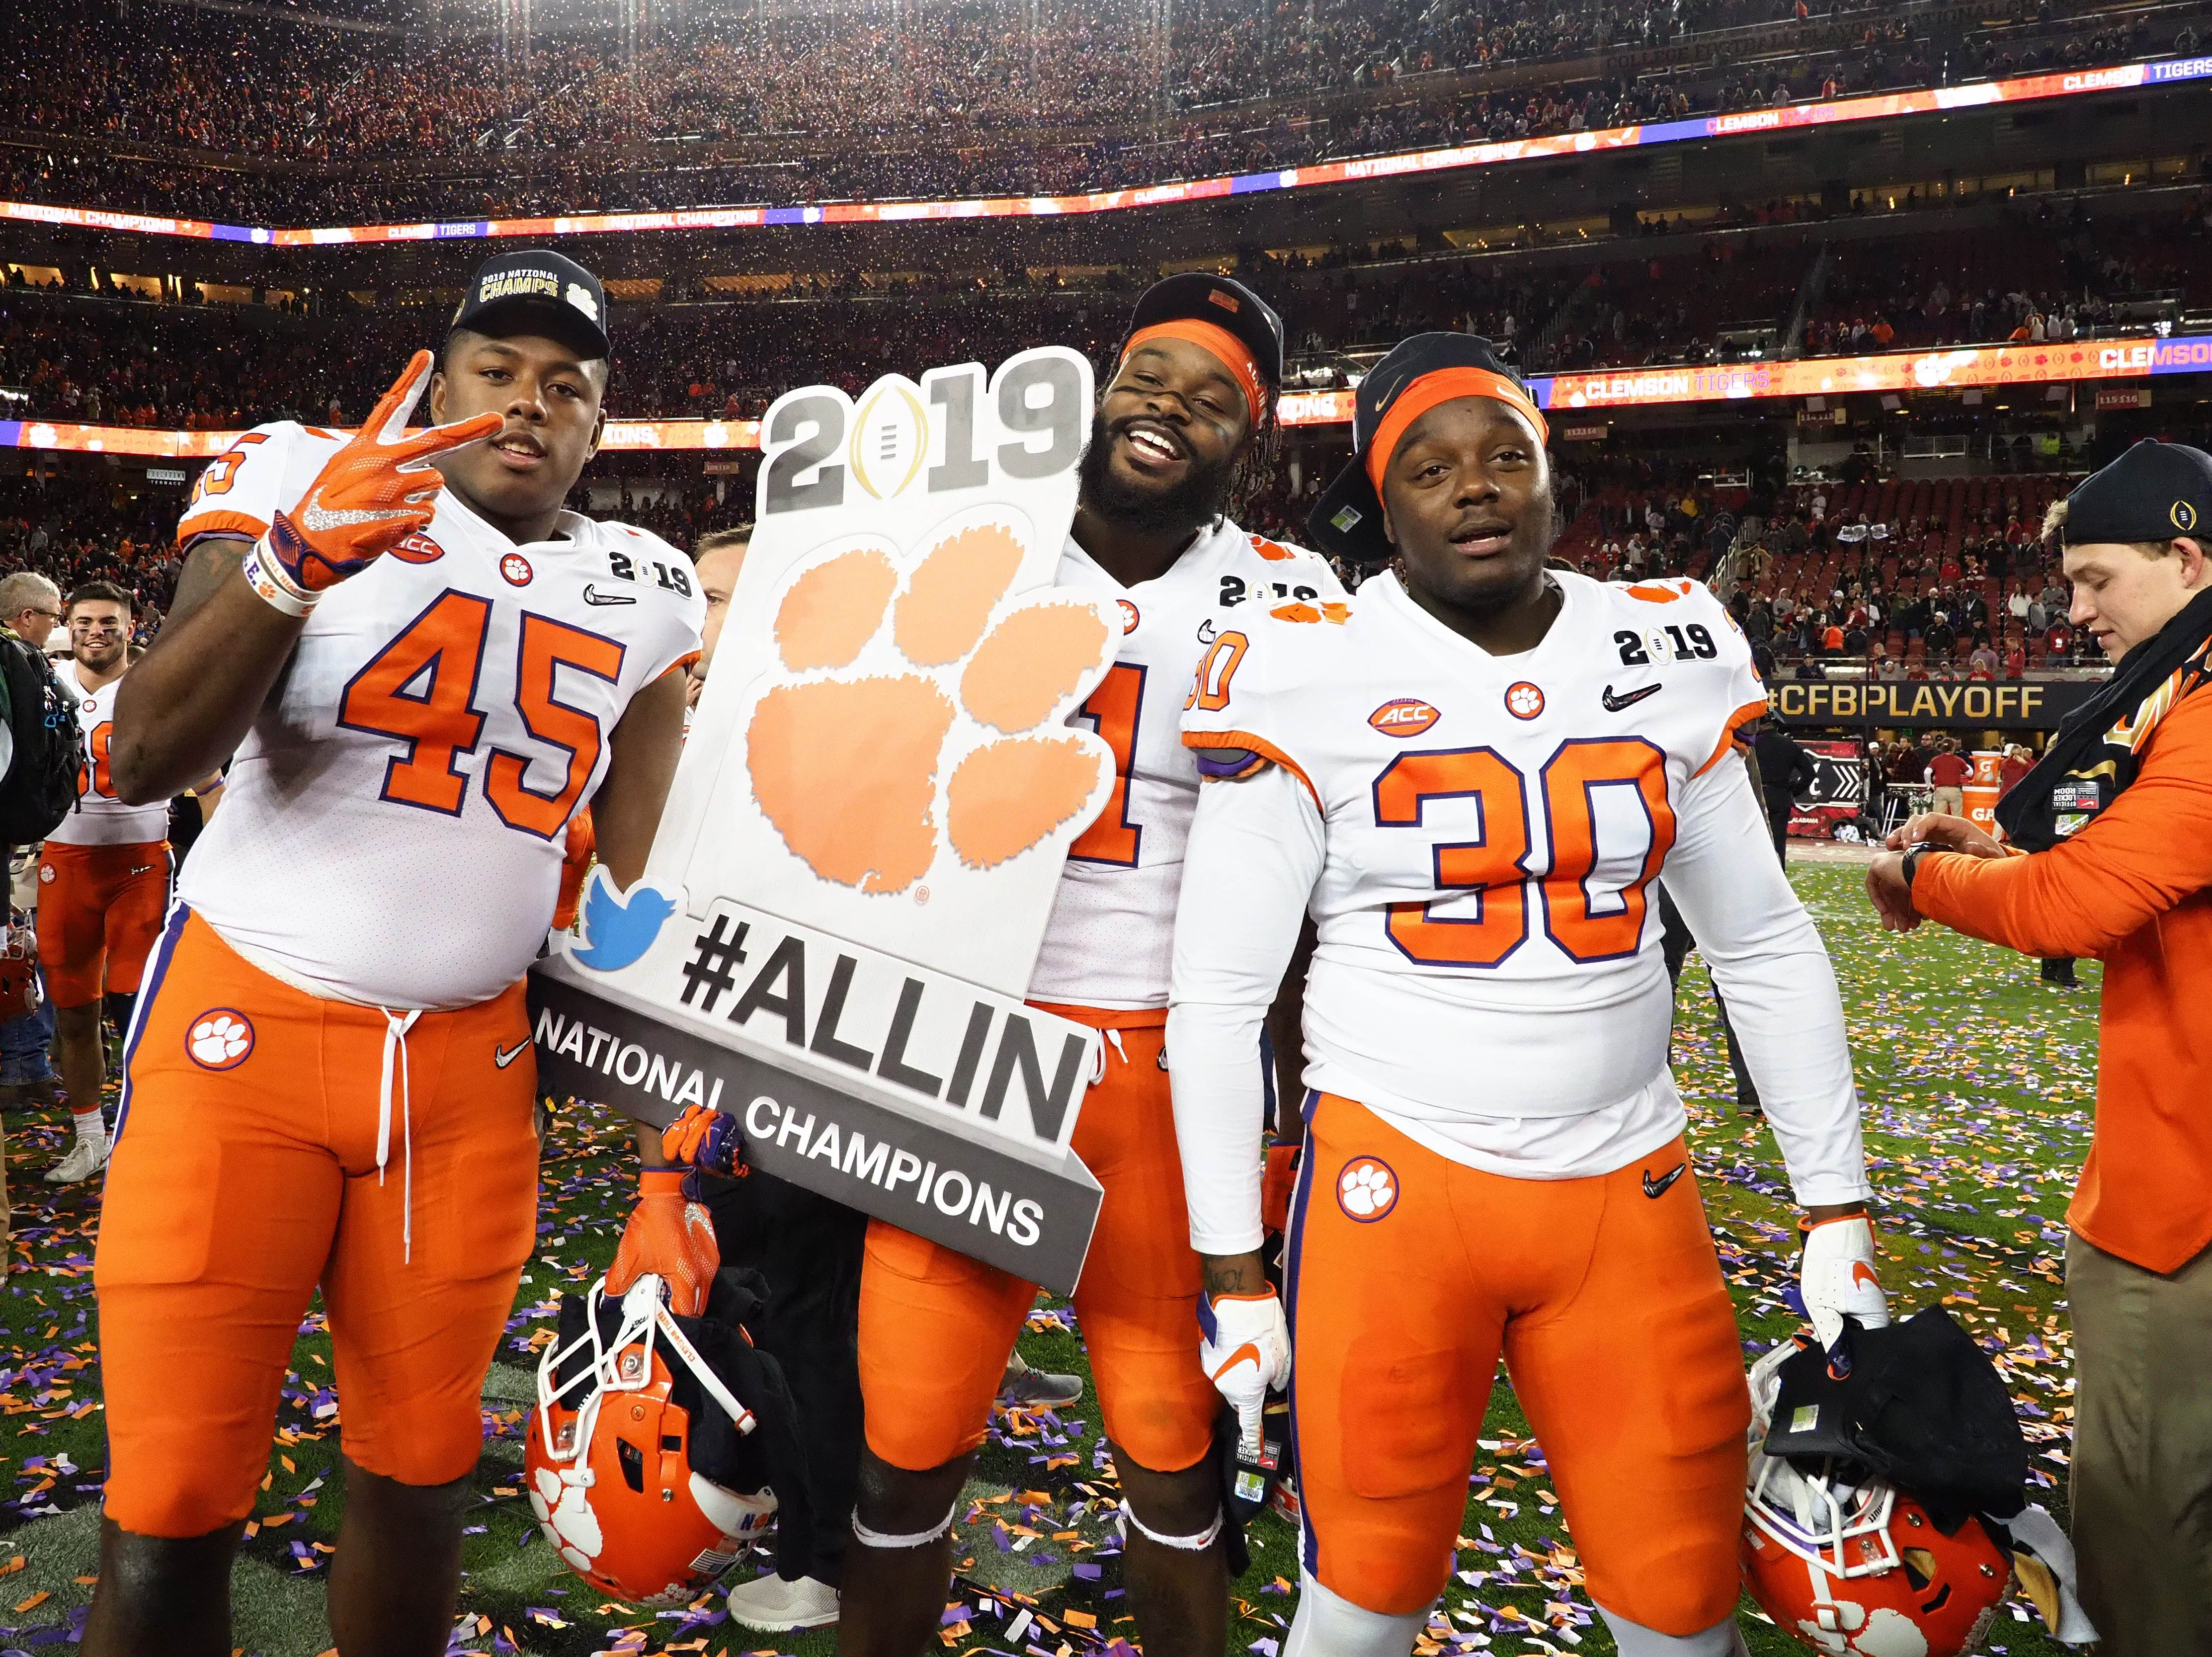 Clemson Tigers defensive end Chris Register (45) joins wide receiver Trevion Thompson (1) and linebacker Jalen Williams (30) in celebrating after winning the title.